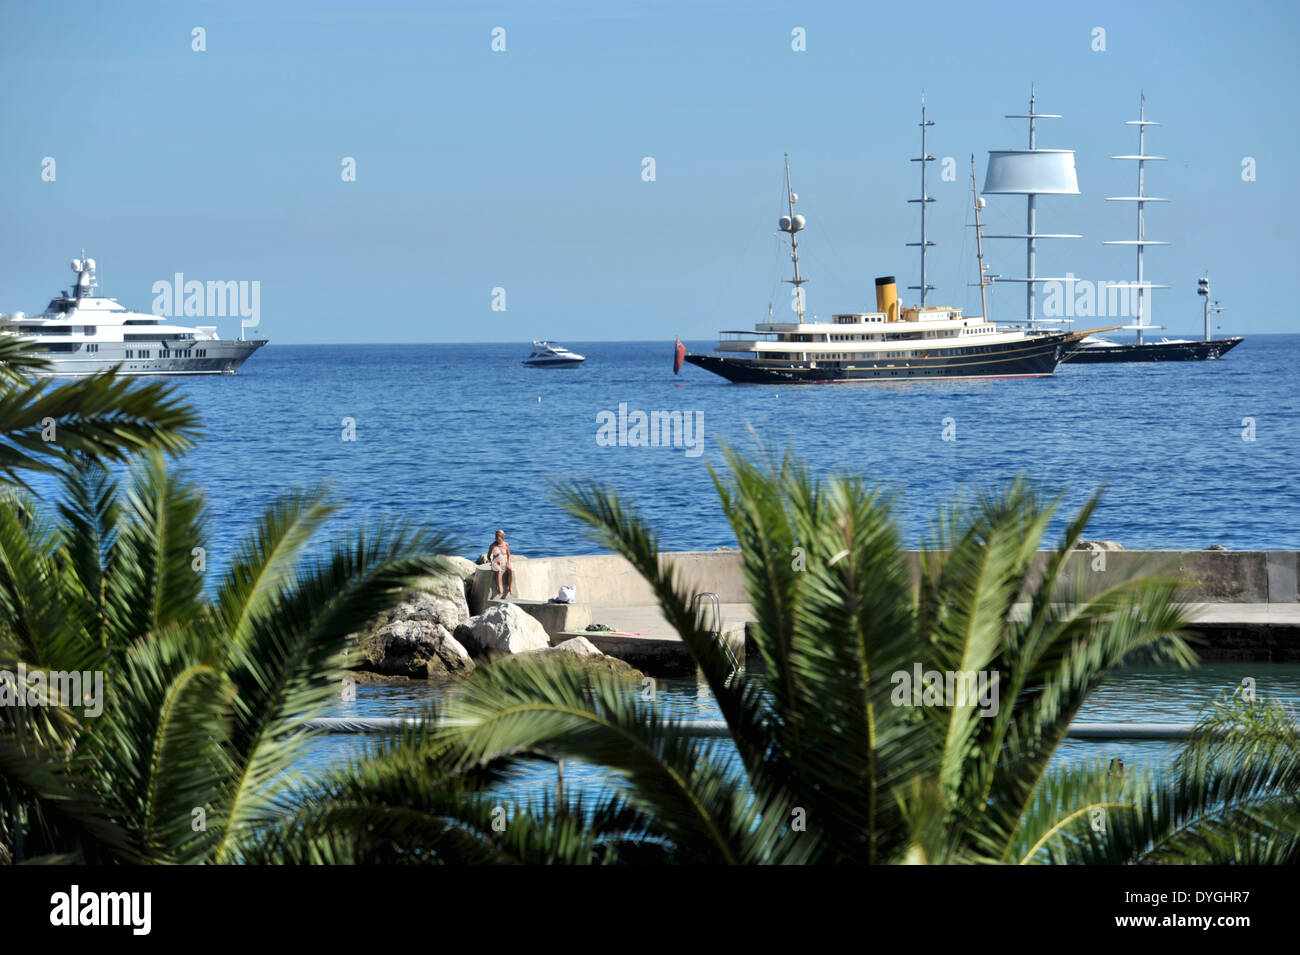 Palm trees line the Monaco shore line, luxury yachts are anchored close by. - Stock Image